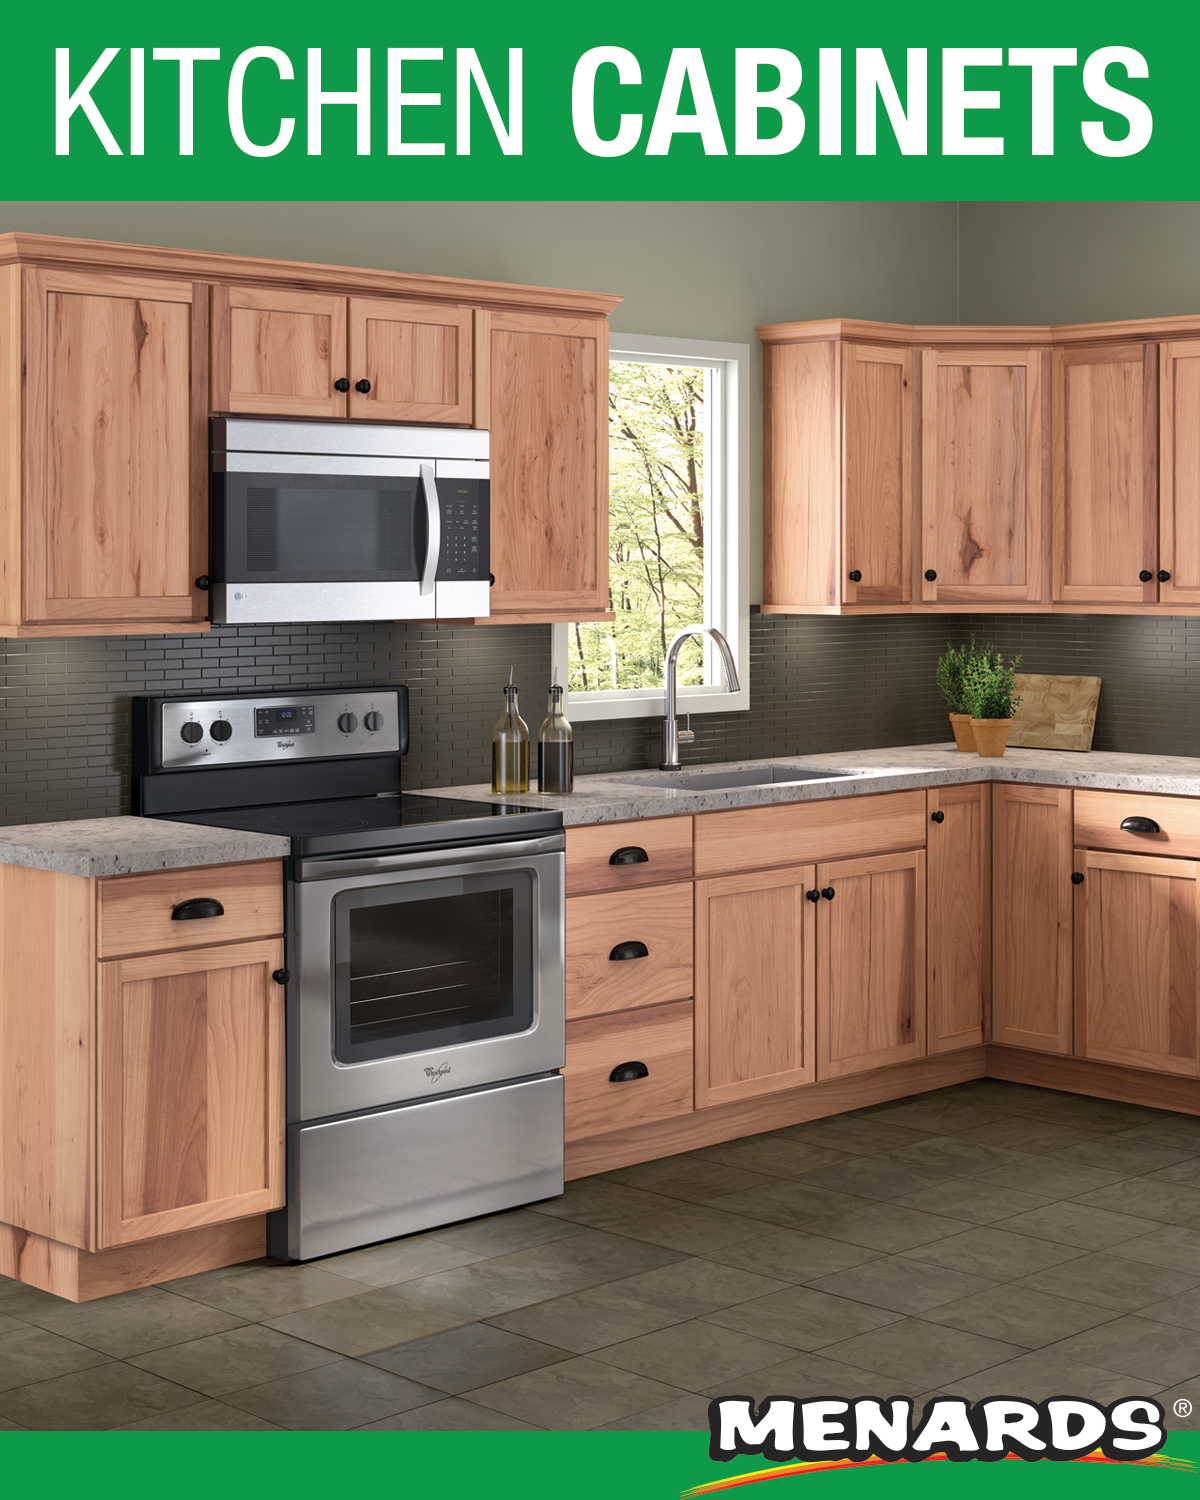 Cardell Concepts 19 L Arbon Natural Kitchen Cabinets Only In 2020 Menards Kitchen Kitchen Cabinets Menards Kitchen Cabinets